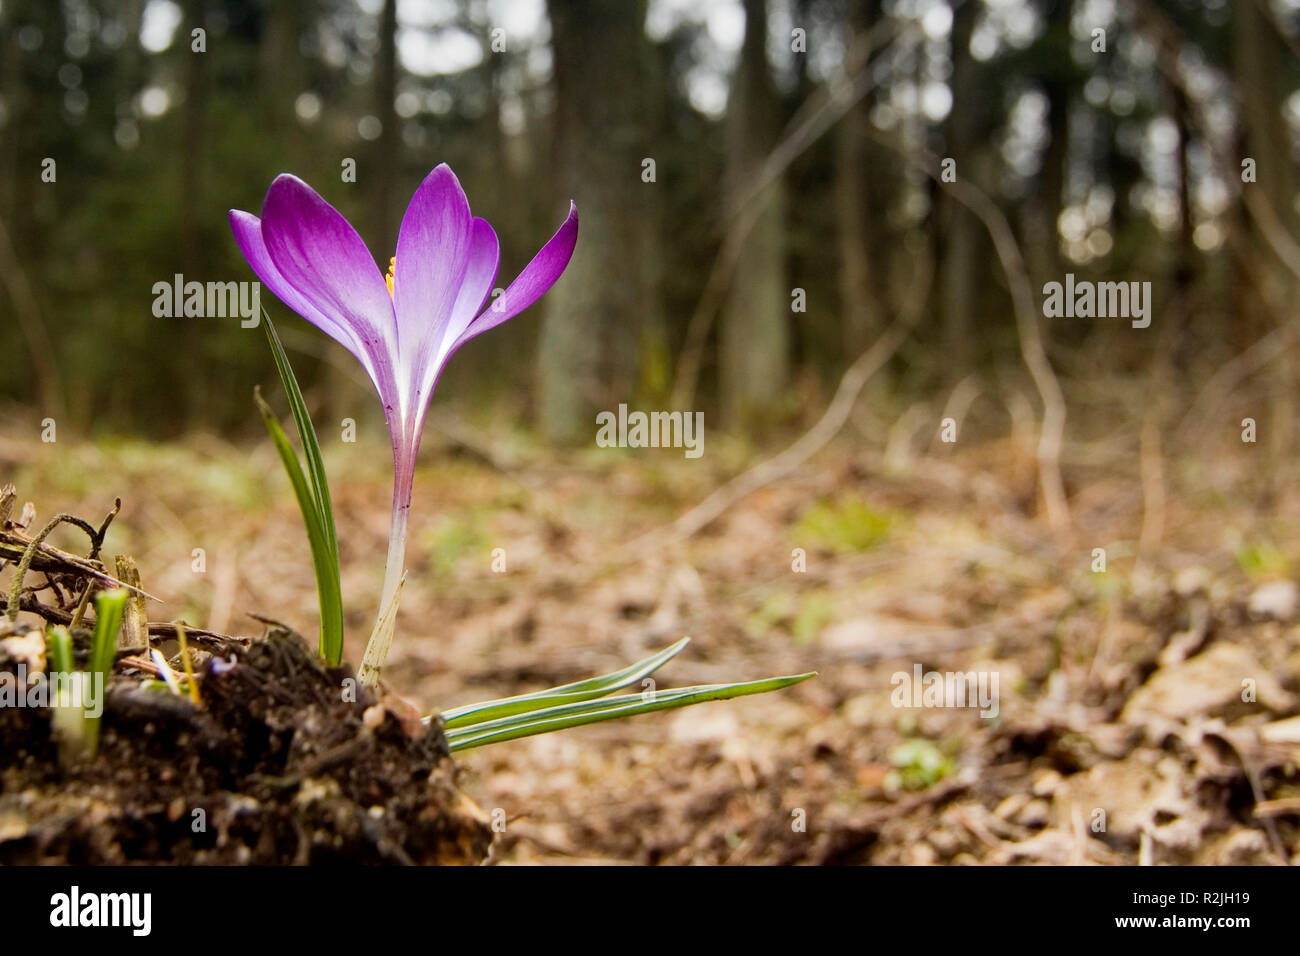 crocus sprawl in the forest - Stock Image